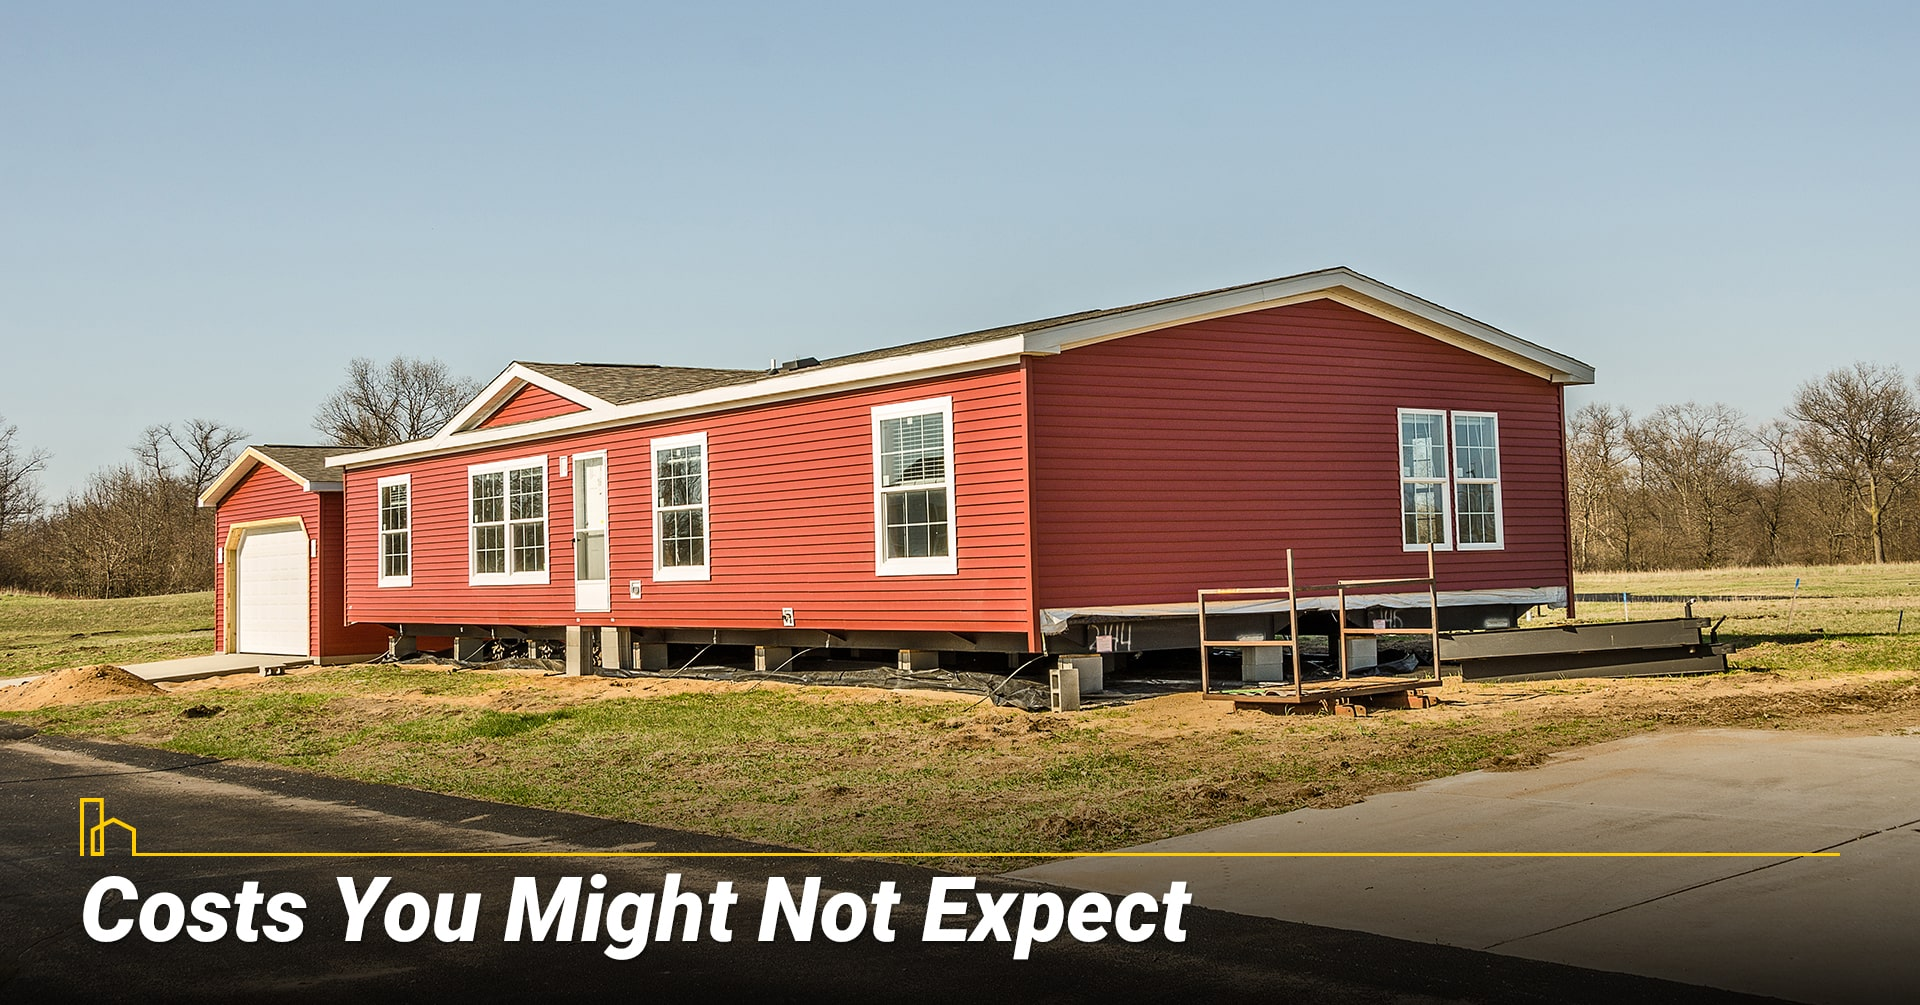 Costs You Might Not Expect, unexpected costs associated with manufactured homes